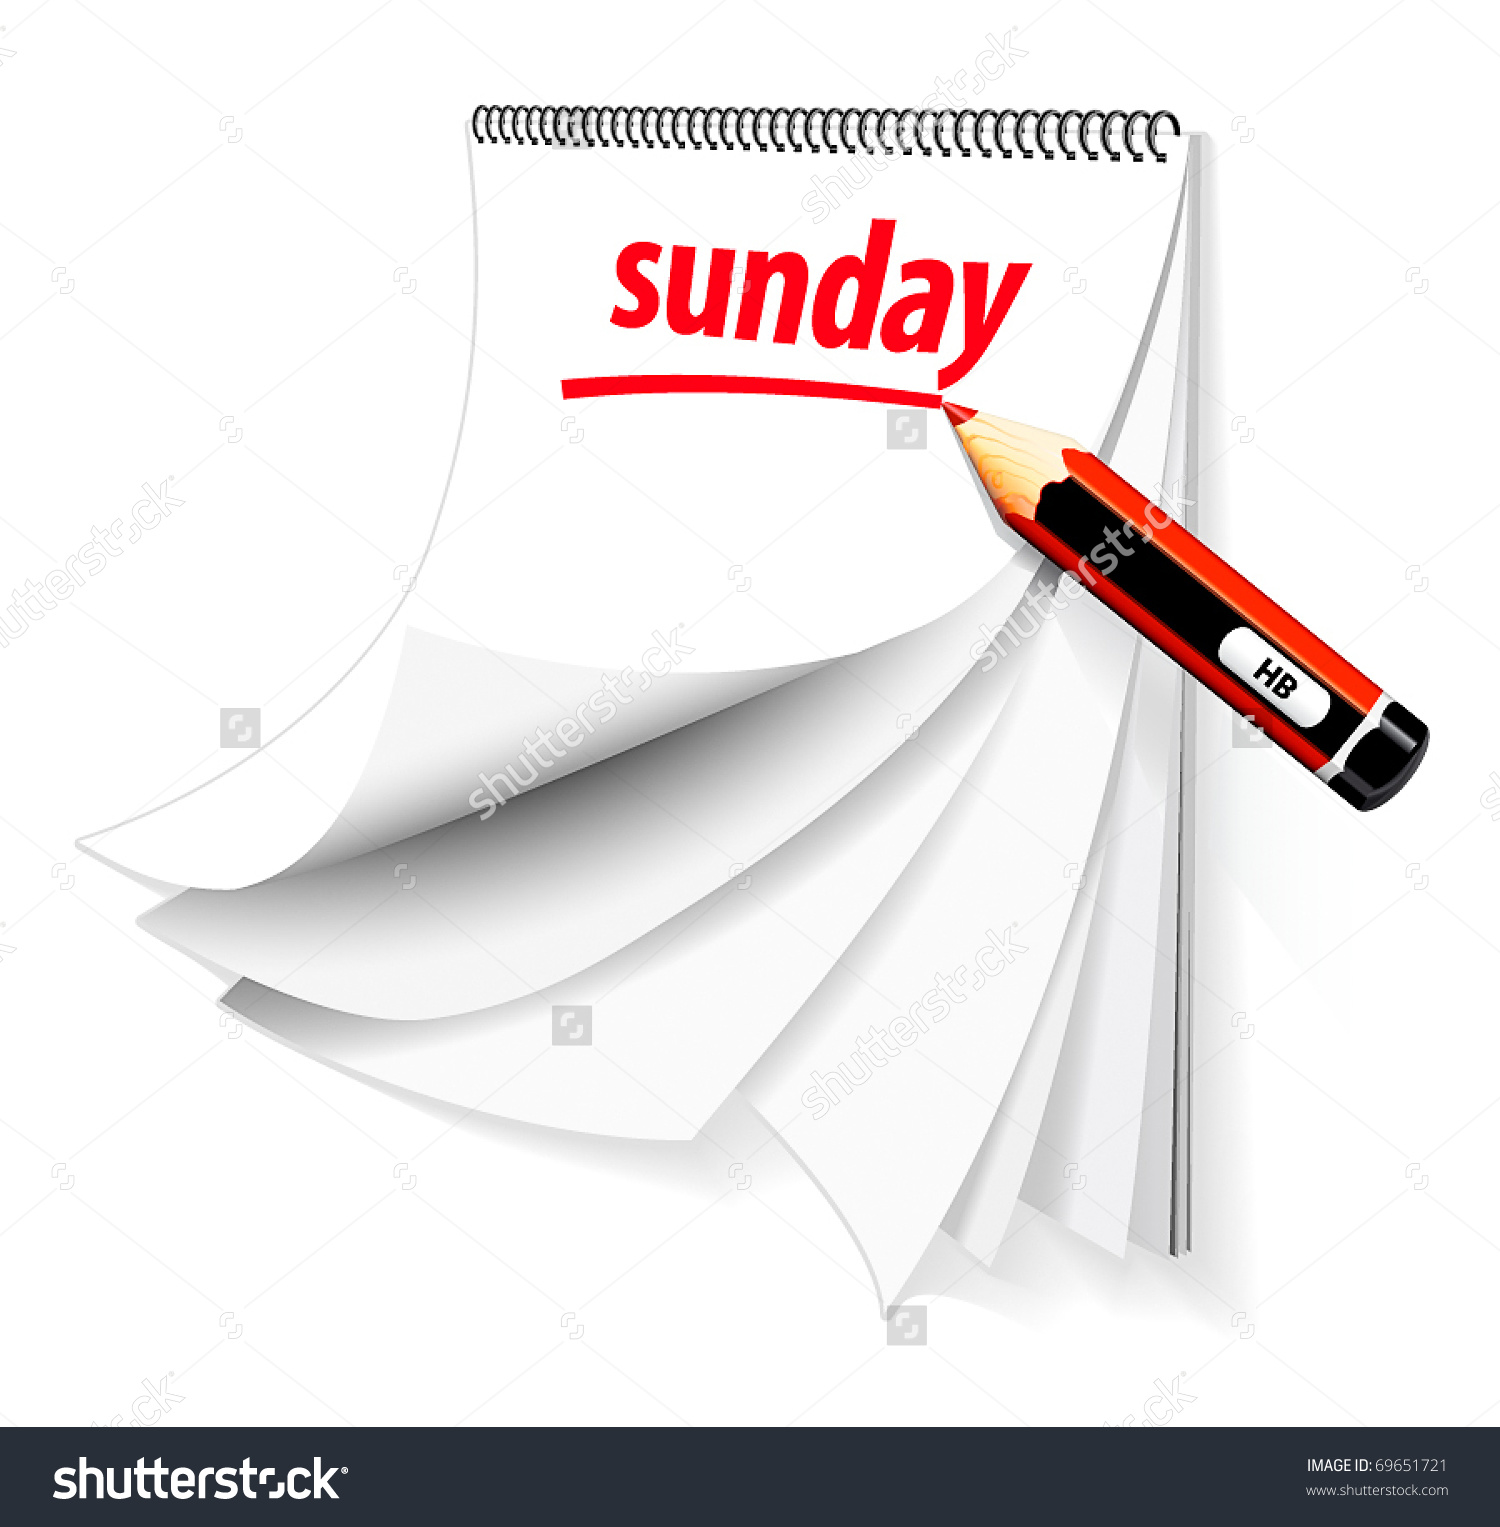 Sunday Calendar Pencil Stock Vector 69651721.